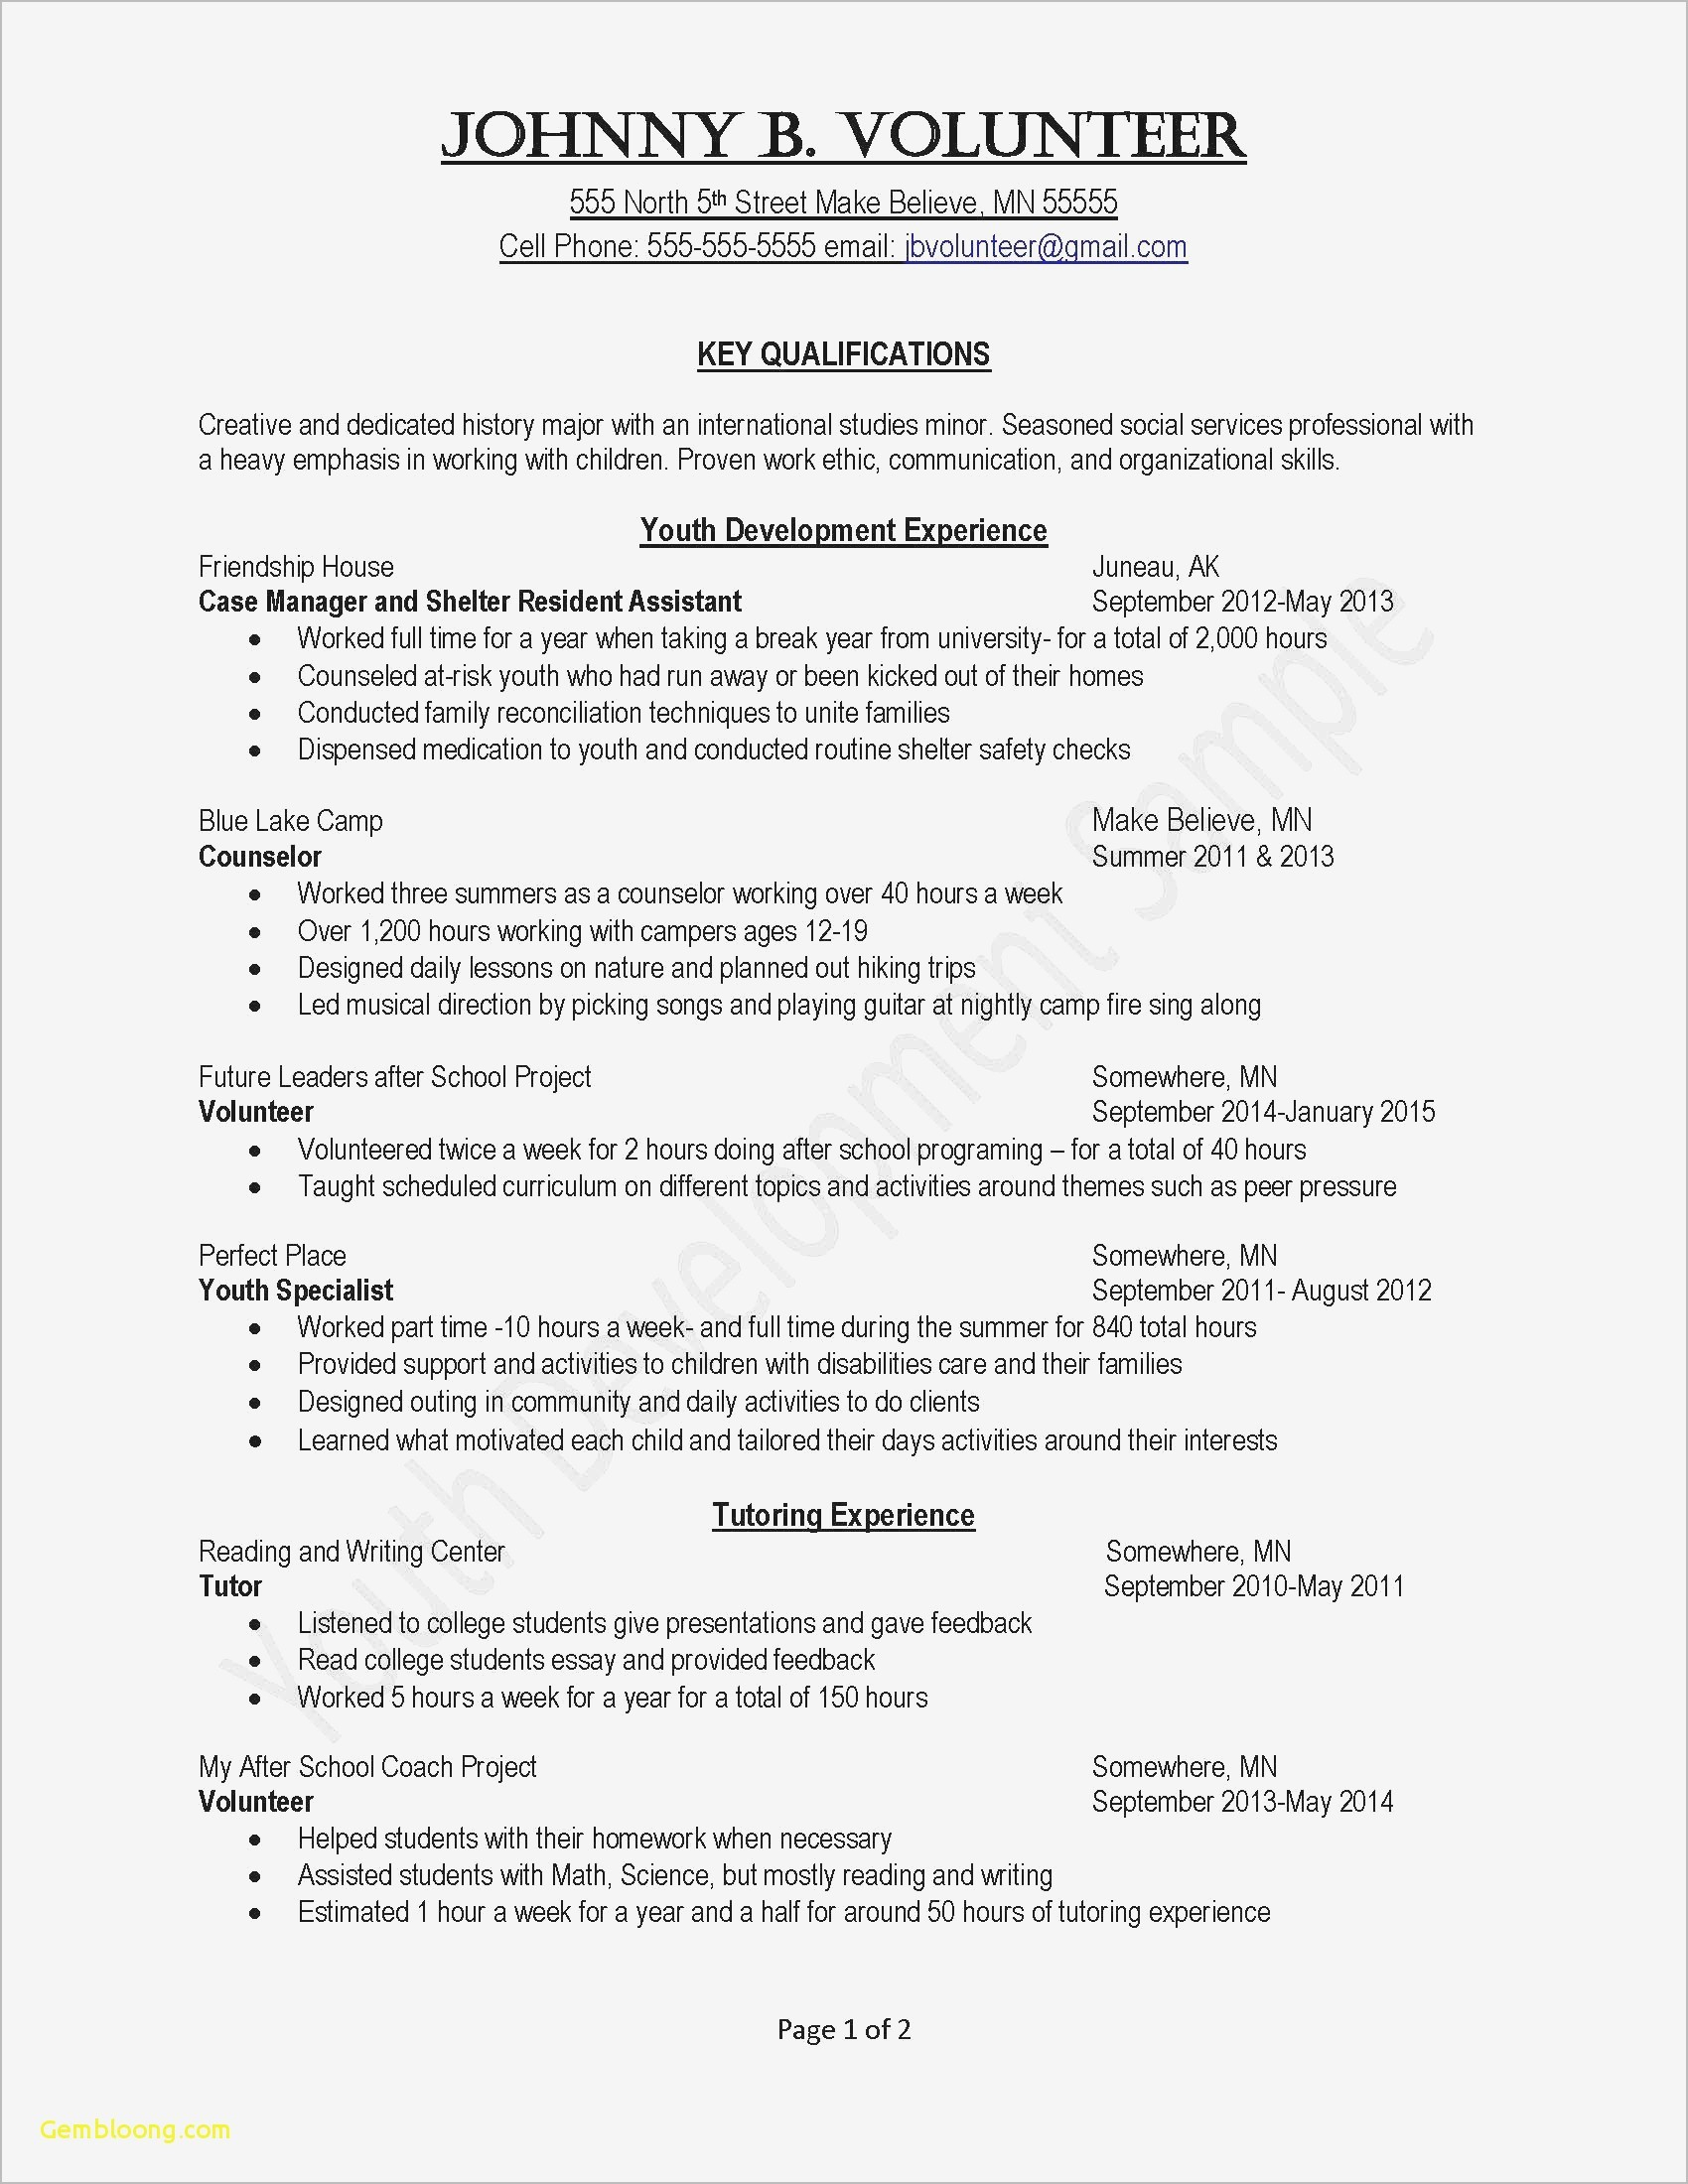 simple job offer letter template example-Job fer Letter Template Us Copy Od Consultant Cover Letter Fungram Valid Simple Cover Letter Template 2-p